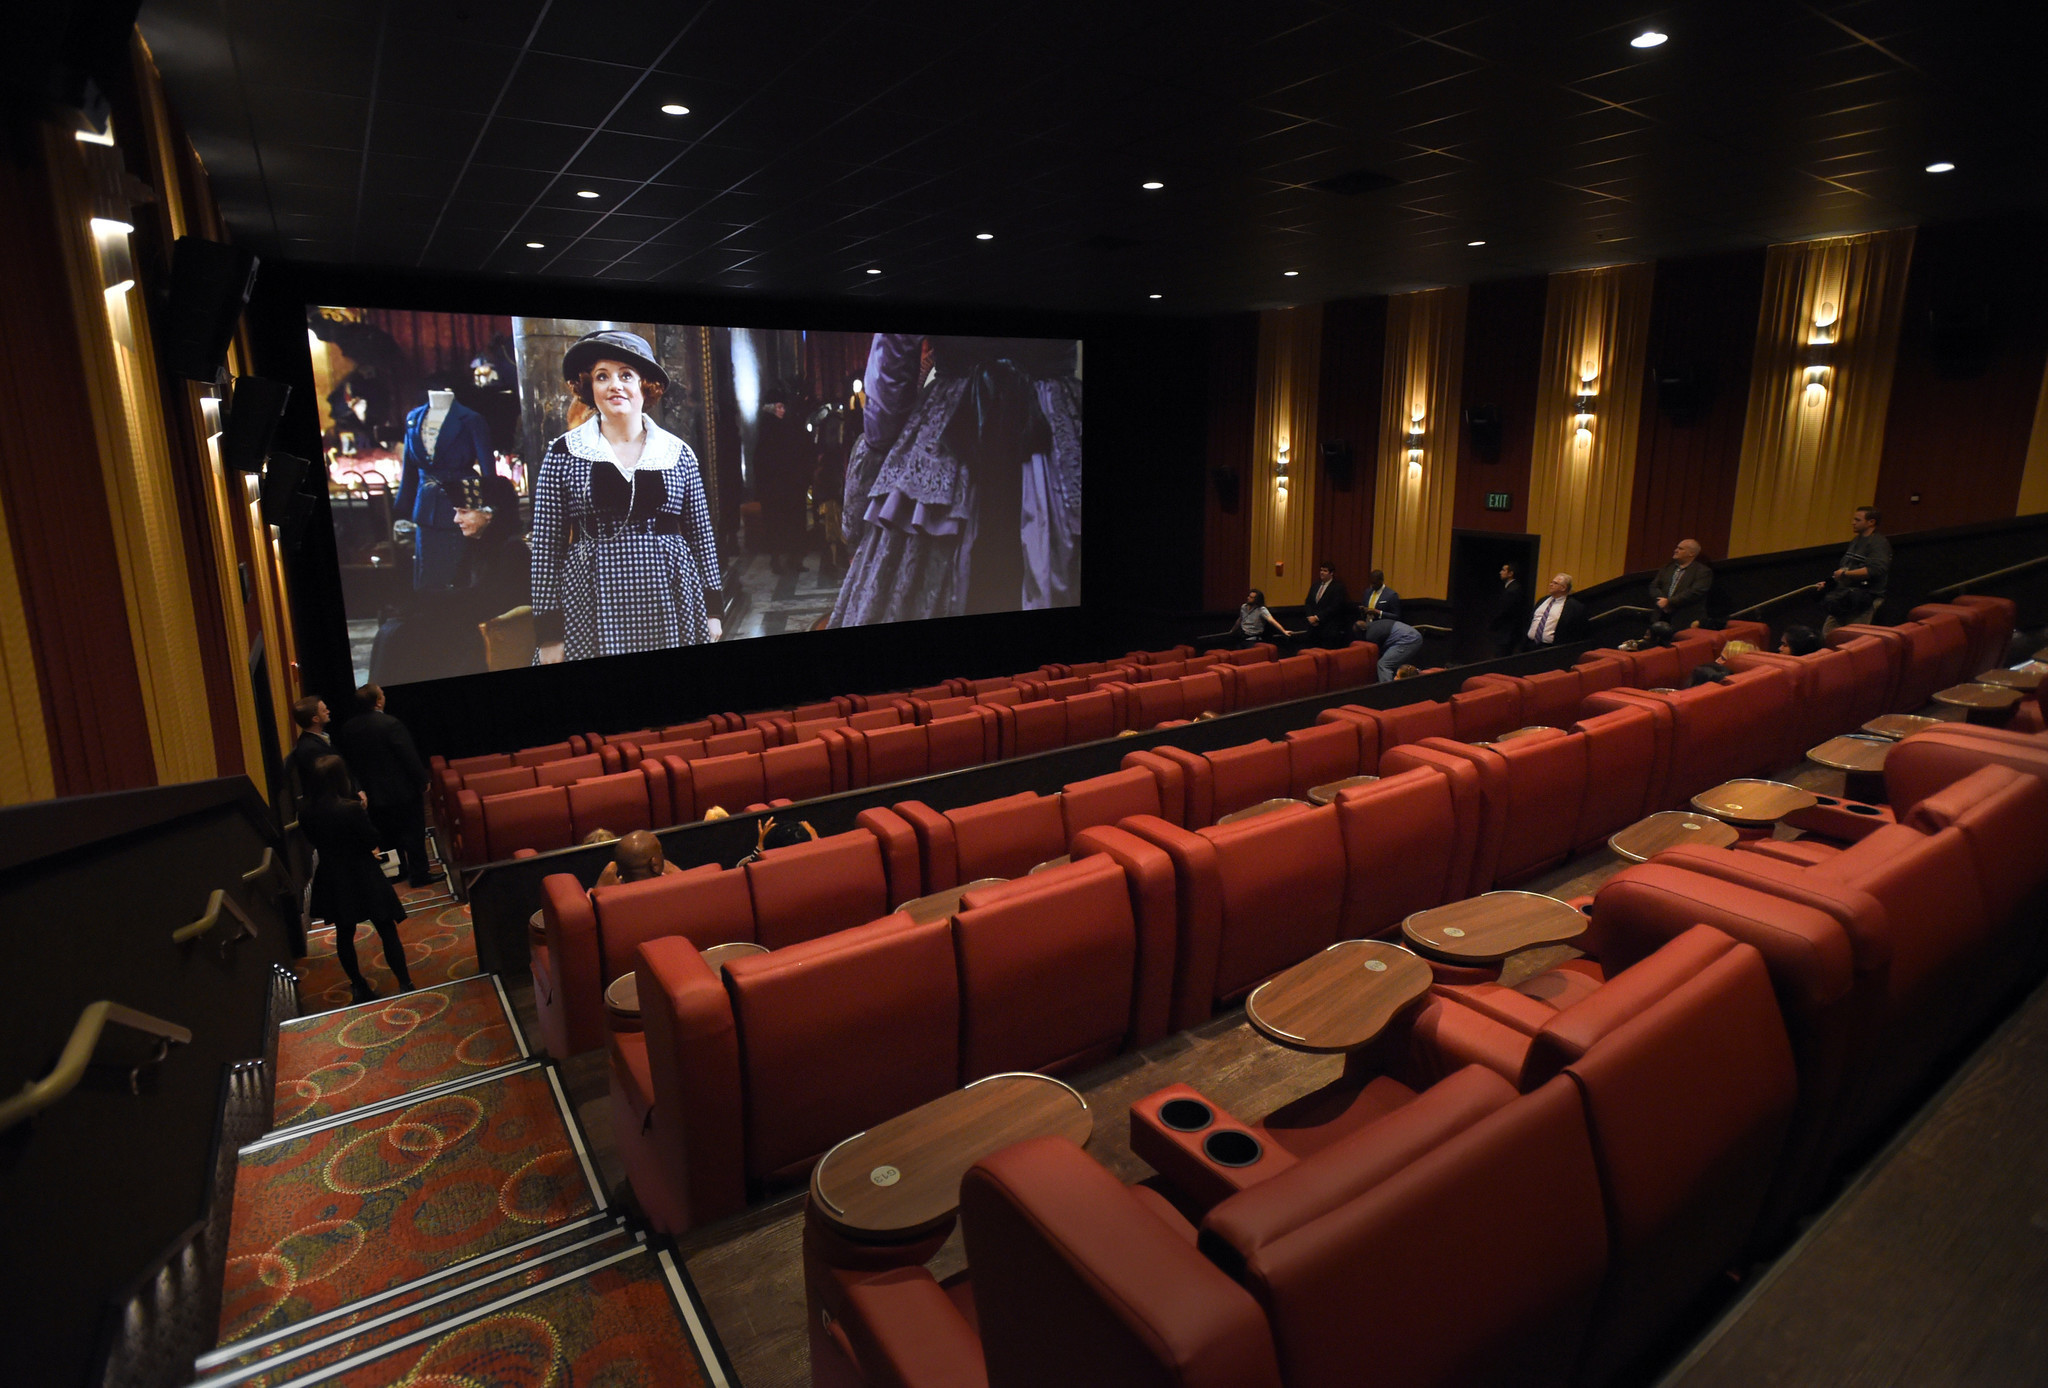 theater s or gold the to labelled quality they offer chair alcons offers five recliner halls auditoriums audio platinum facilities deliver premium ribbons movie hall cinema according are pro flix priced silver cinemas